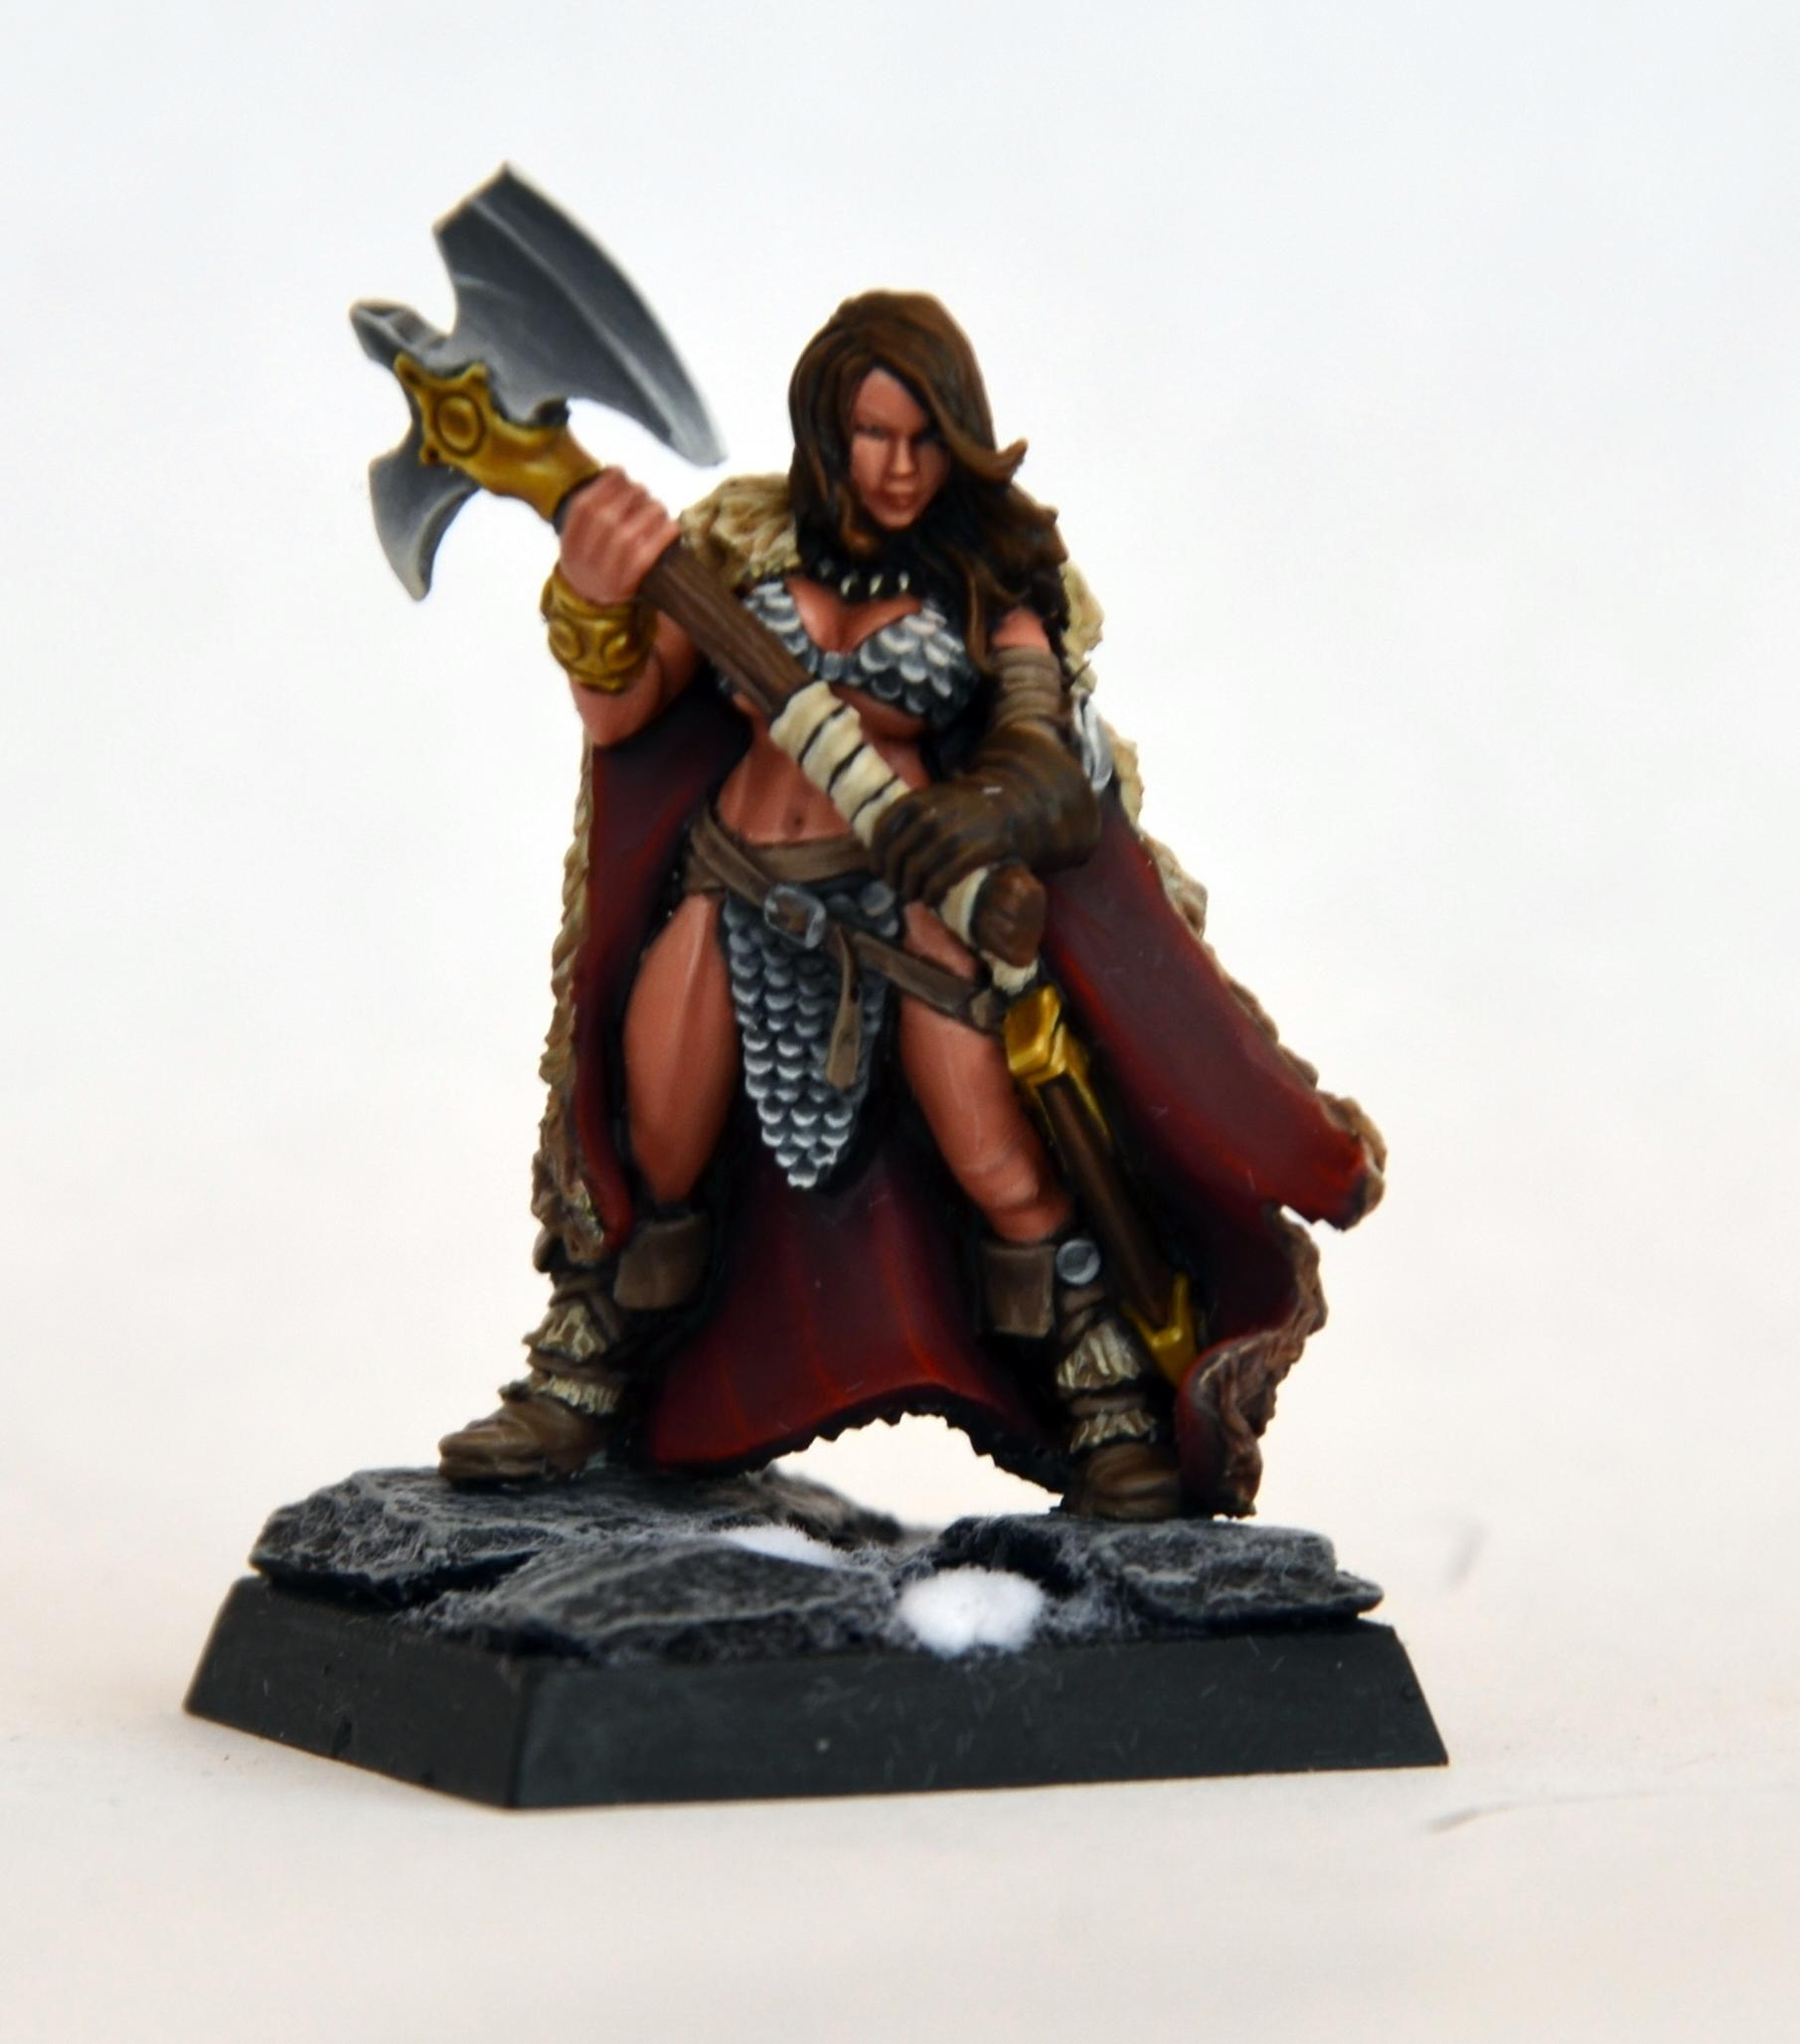 Chainmail Bikini, Chaos, Female, Hasslefree Miniatures, Marauders, Warriors Of Chaos